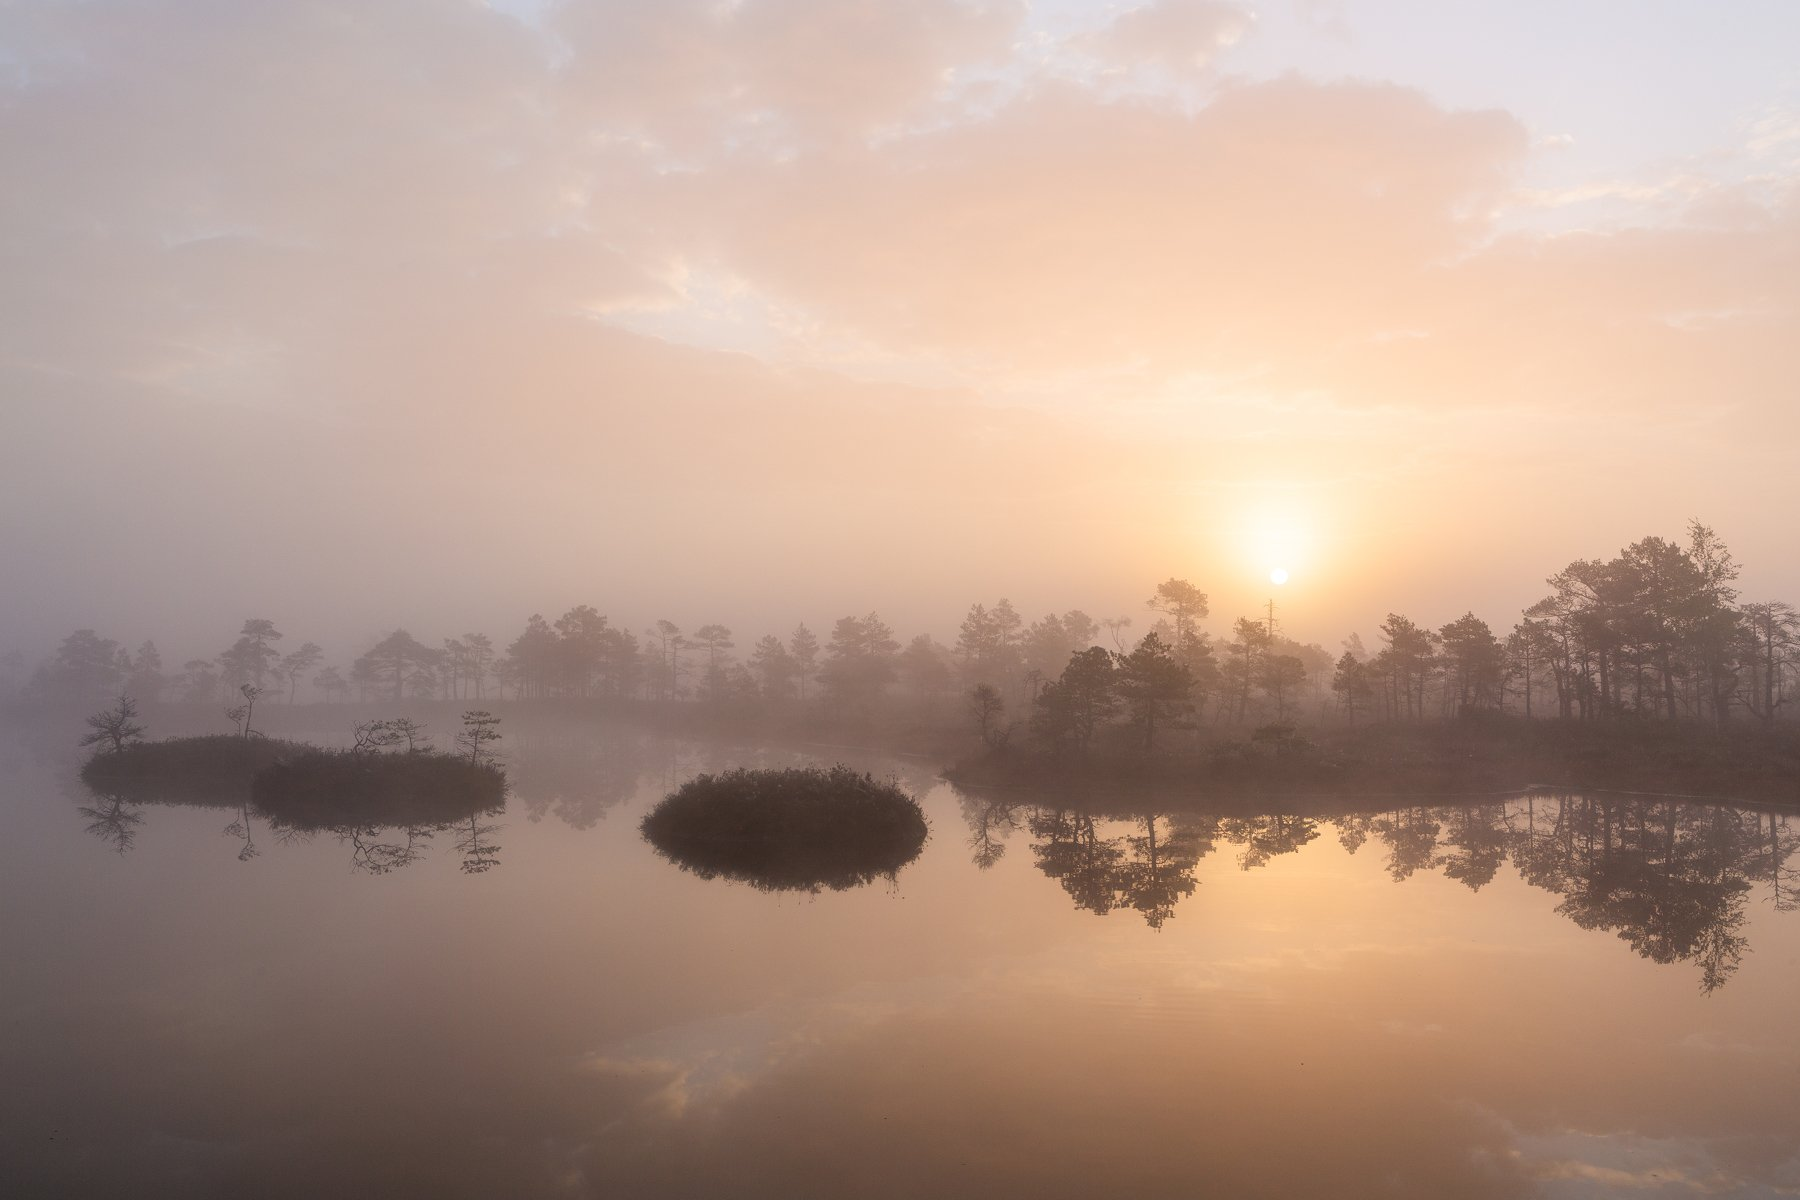 bog,marsh,swamp,lake,sunrise,forest,landscape,fog,, Zilbalodis Eriks